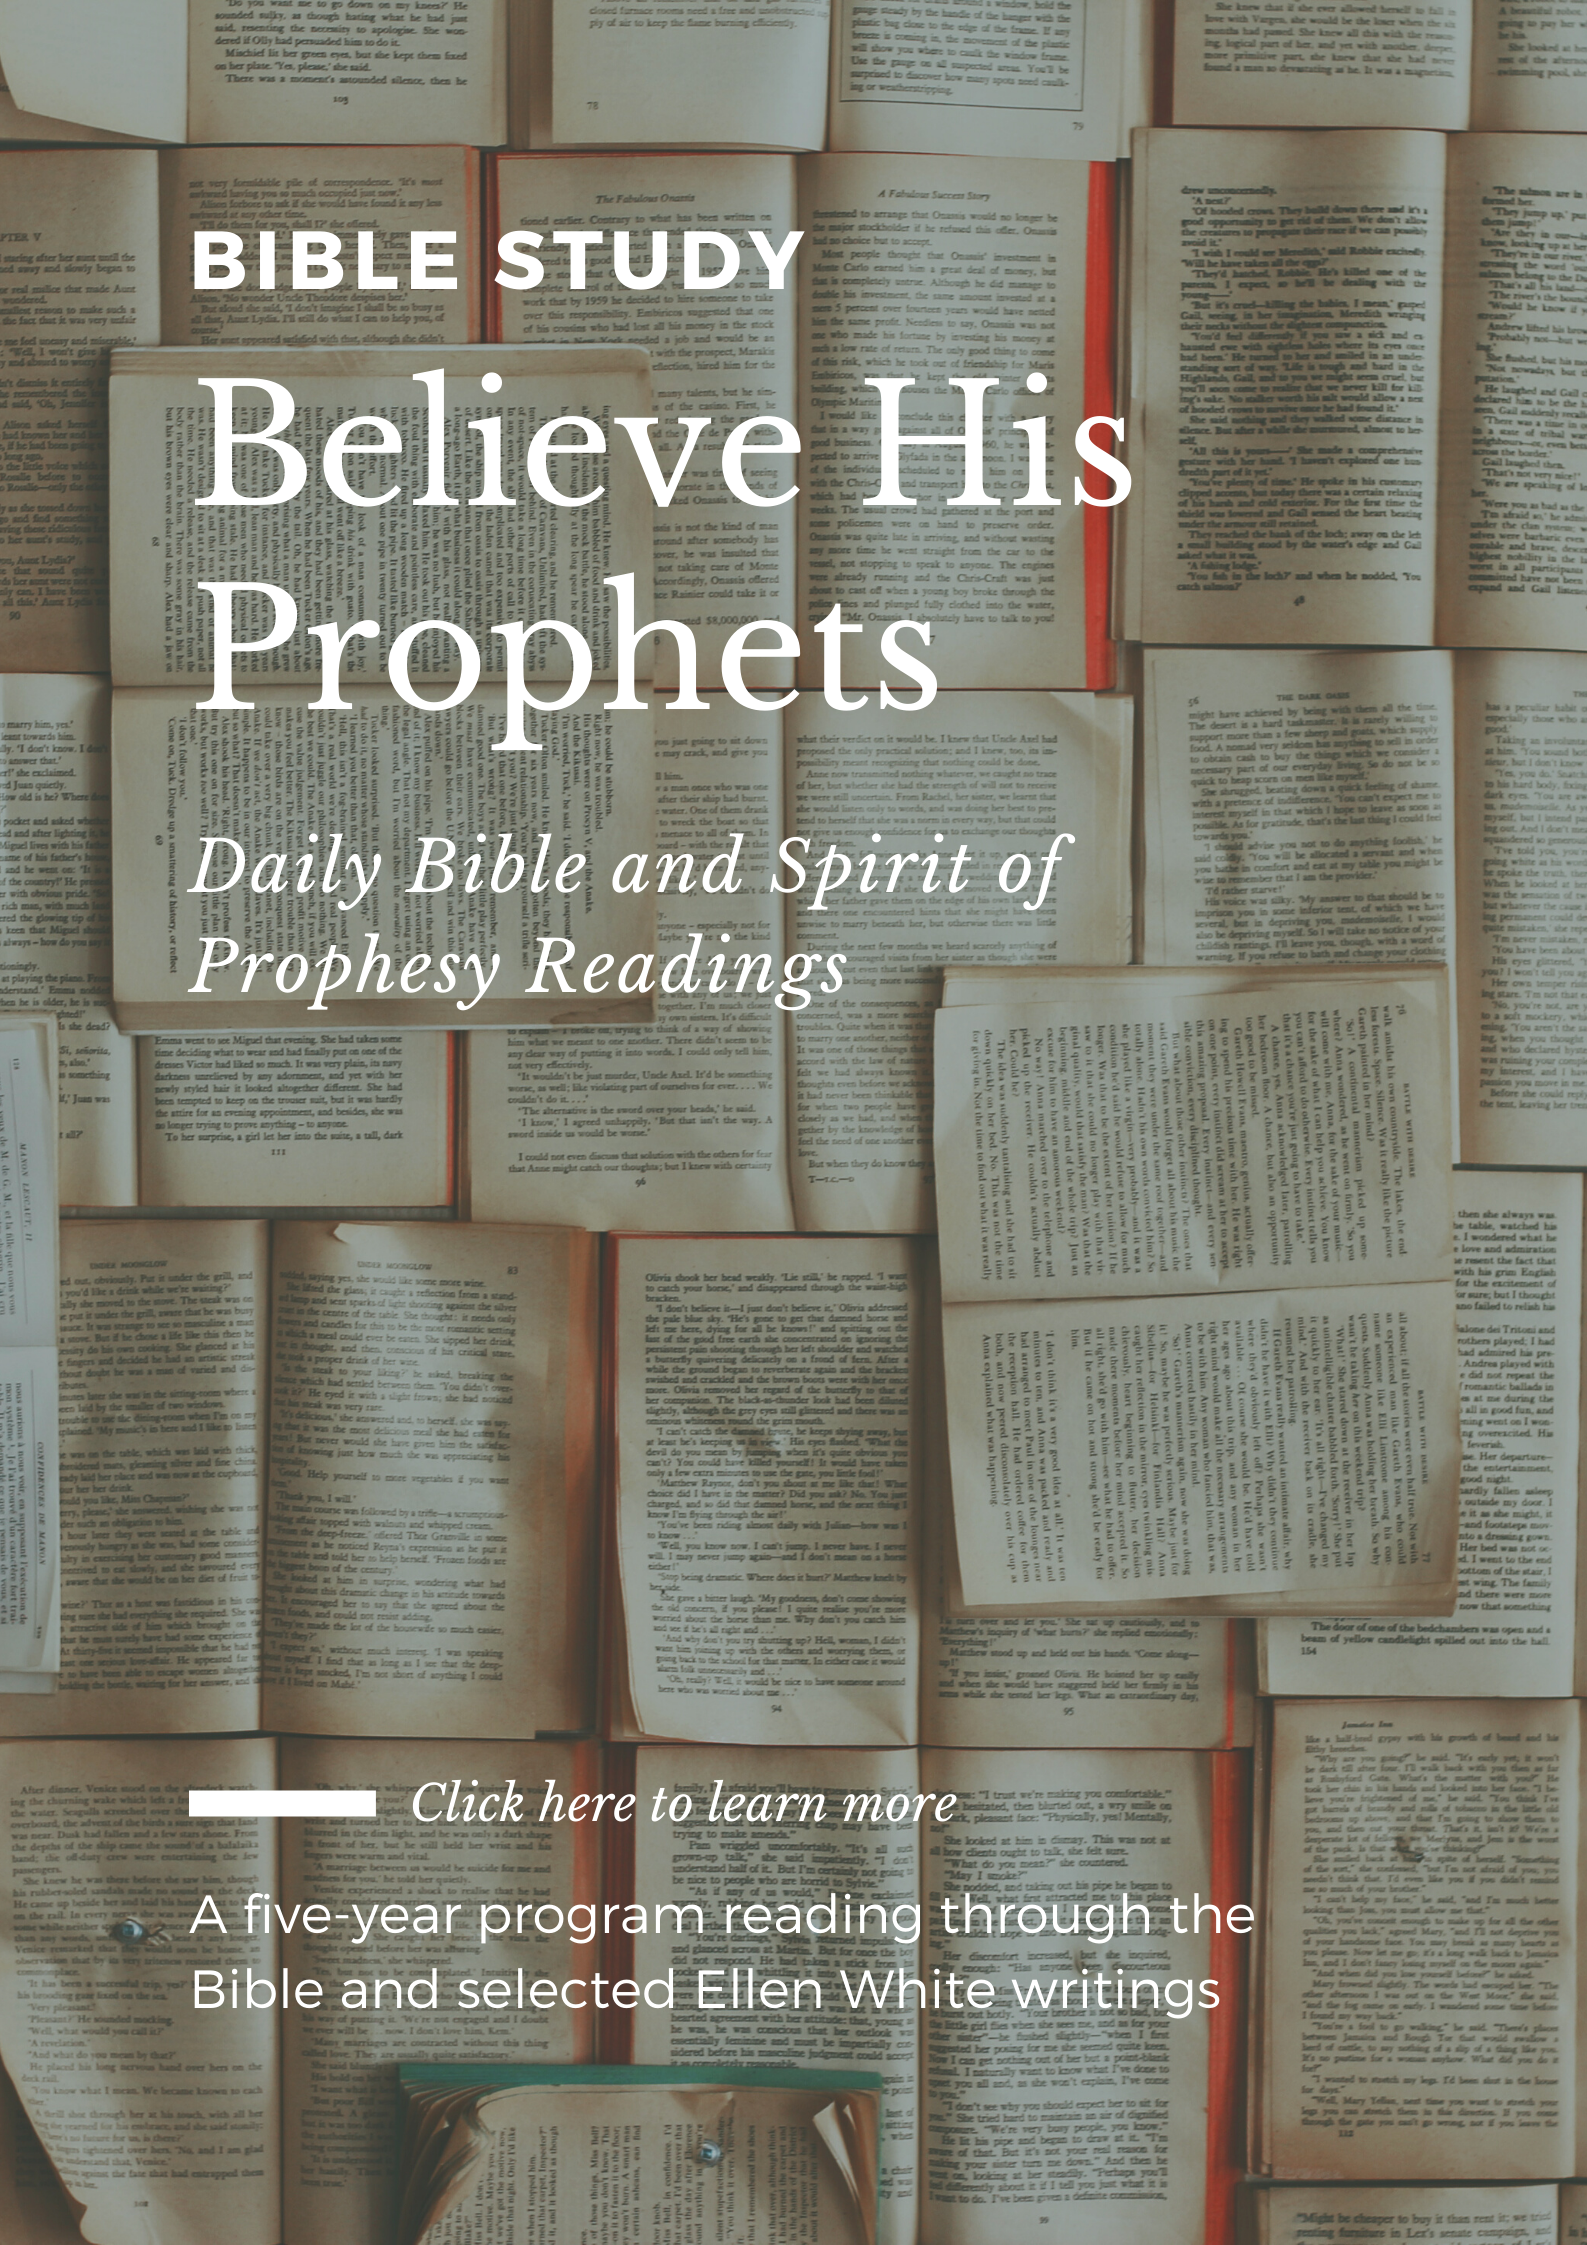 Daily Bible and Spirit of Prophesy Readings